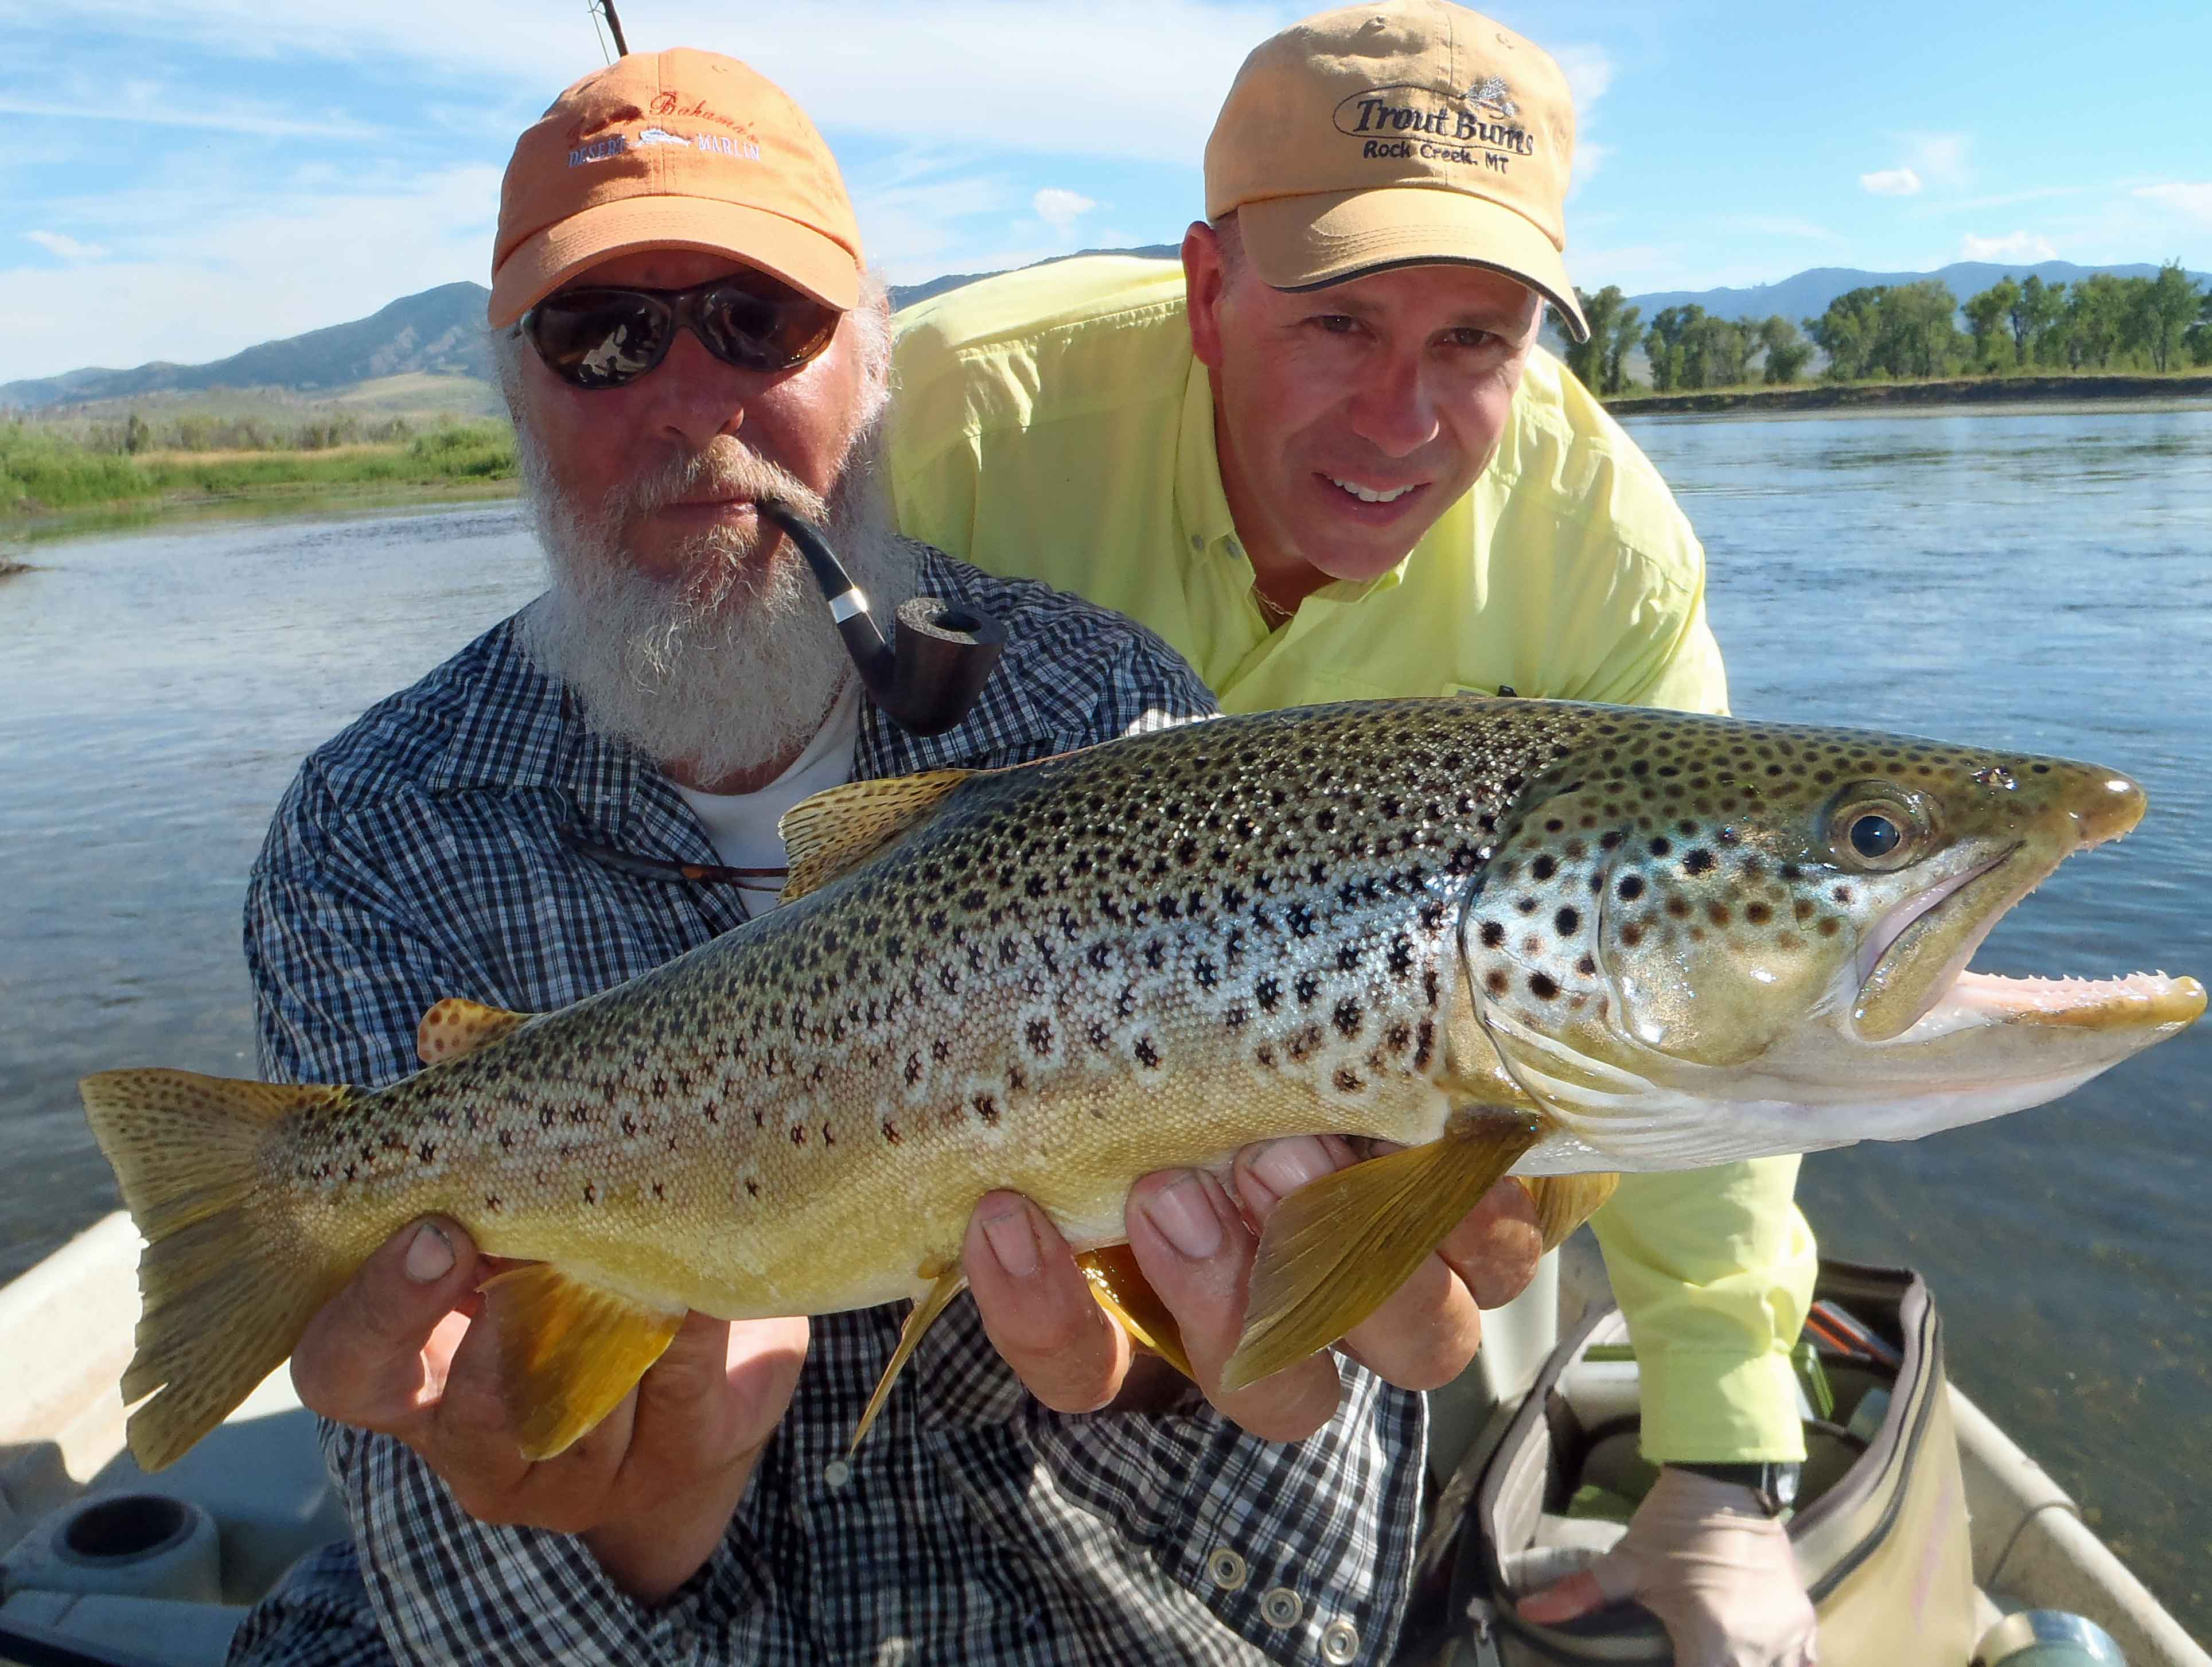 Fly Fishing Destination Trips To The Outer Banks in July and Montana. Come And Enjoy These Unique Destination Trips